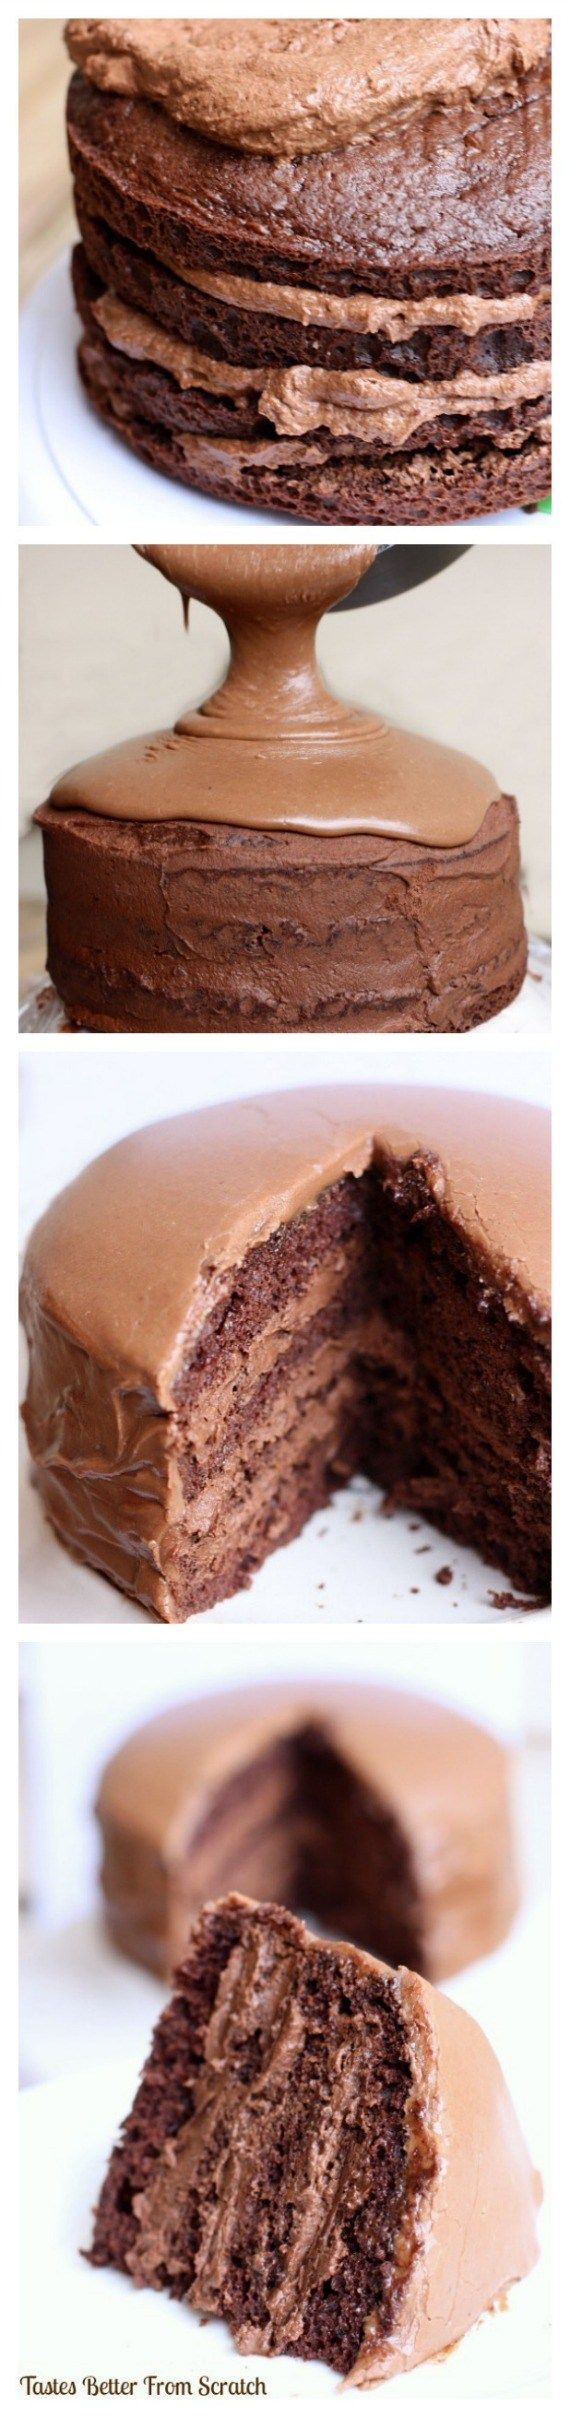 Cake boss chocolate mousse frosting recipe